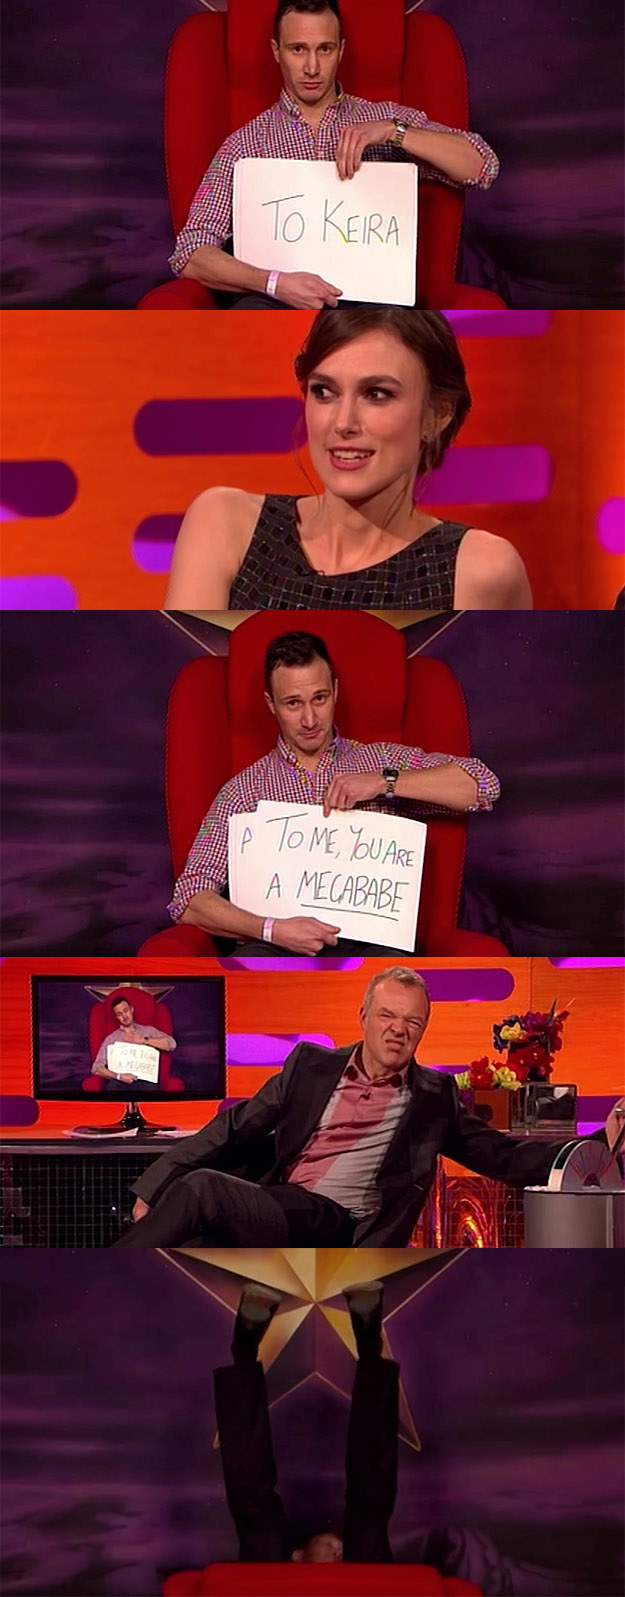 When a guest on the red chair decided to recreate the scene from Love Actually for Keira Knightley, who was a guest on that week's show.